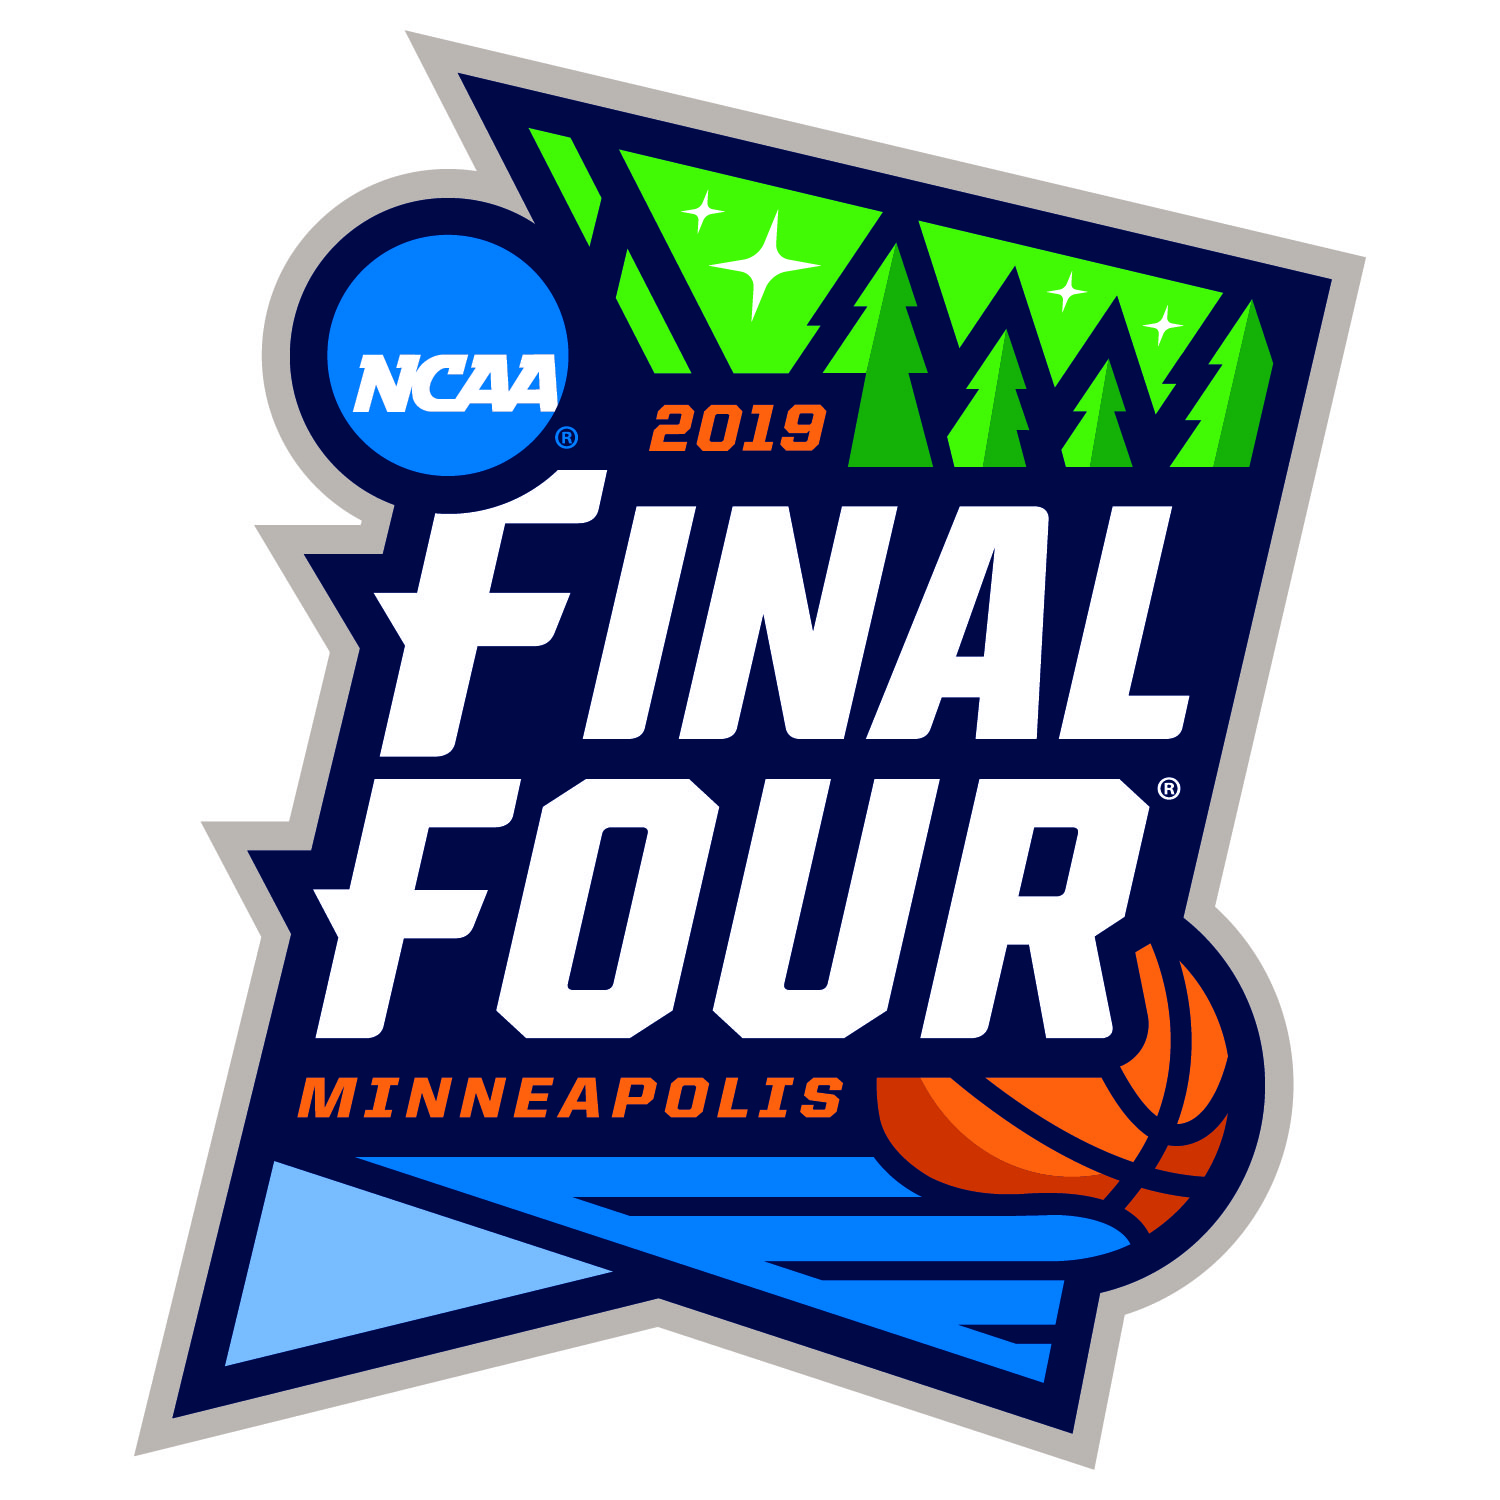 ncaa reveals minneapolis final four logo ncaa basketball sporting news. Black Bedroom Furniture Sets. Home Design Ideas